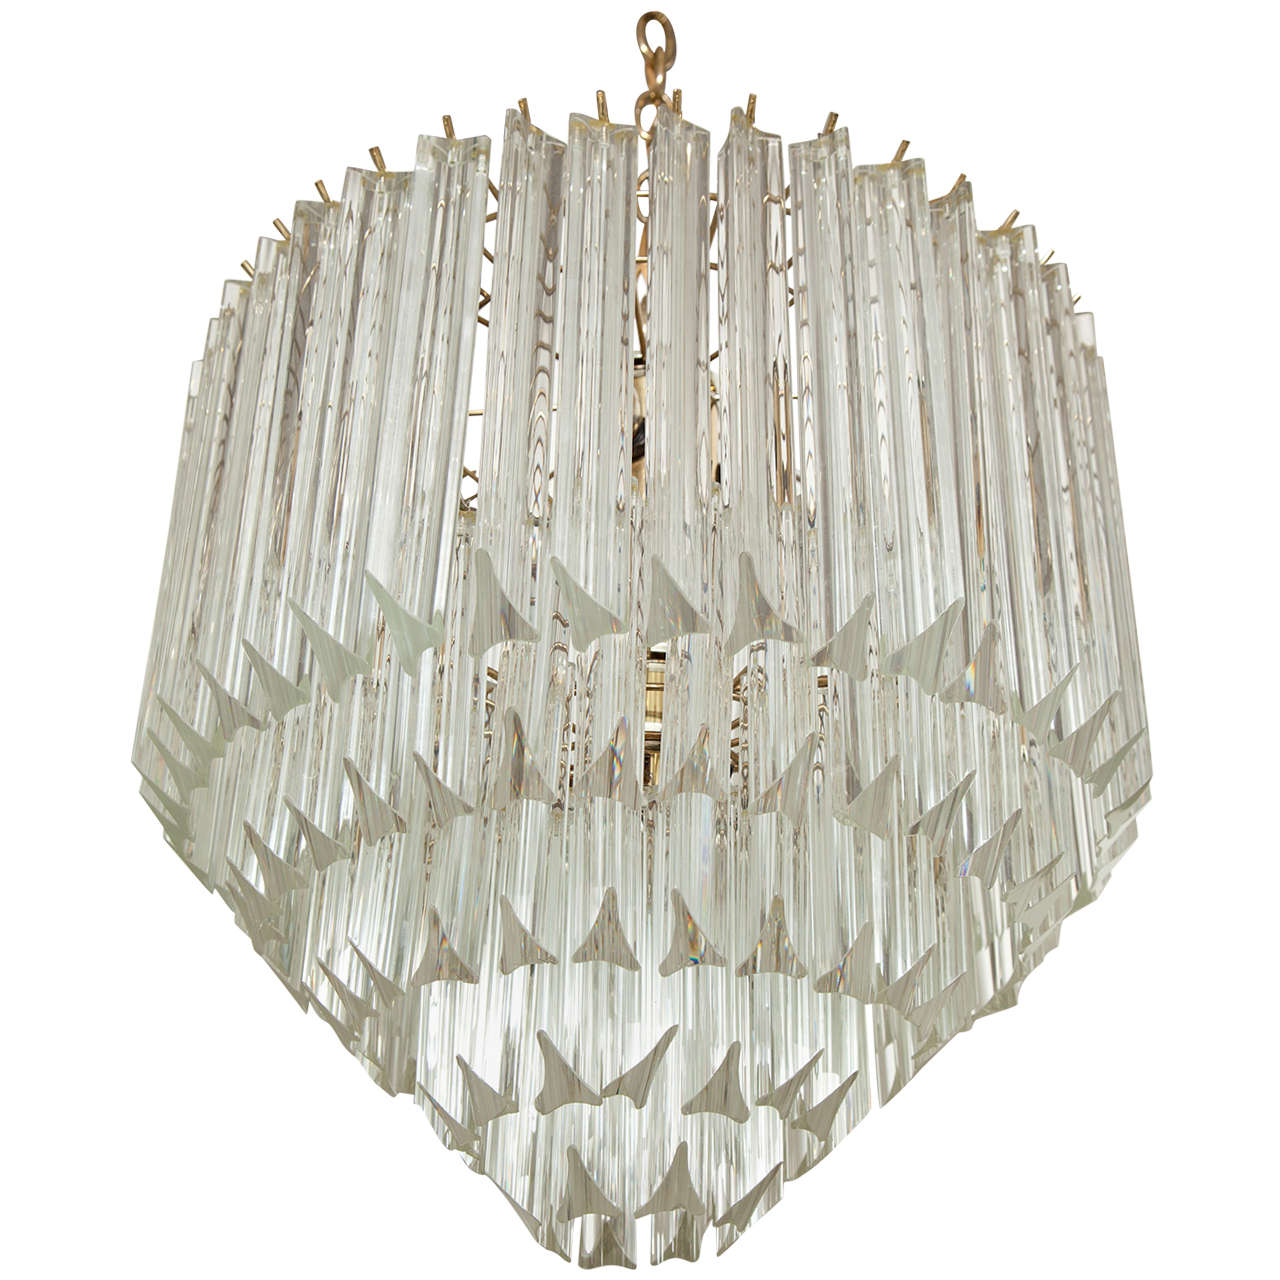 Exquisite Camer Style Murano Glass Chandelier at 1stdibs – Glass Prisms for Chandeliers